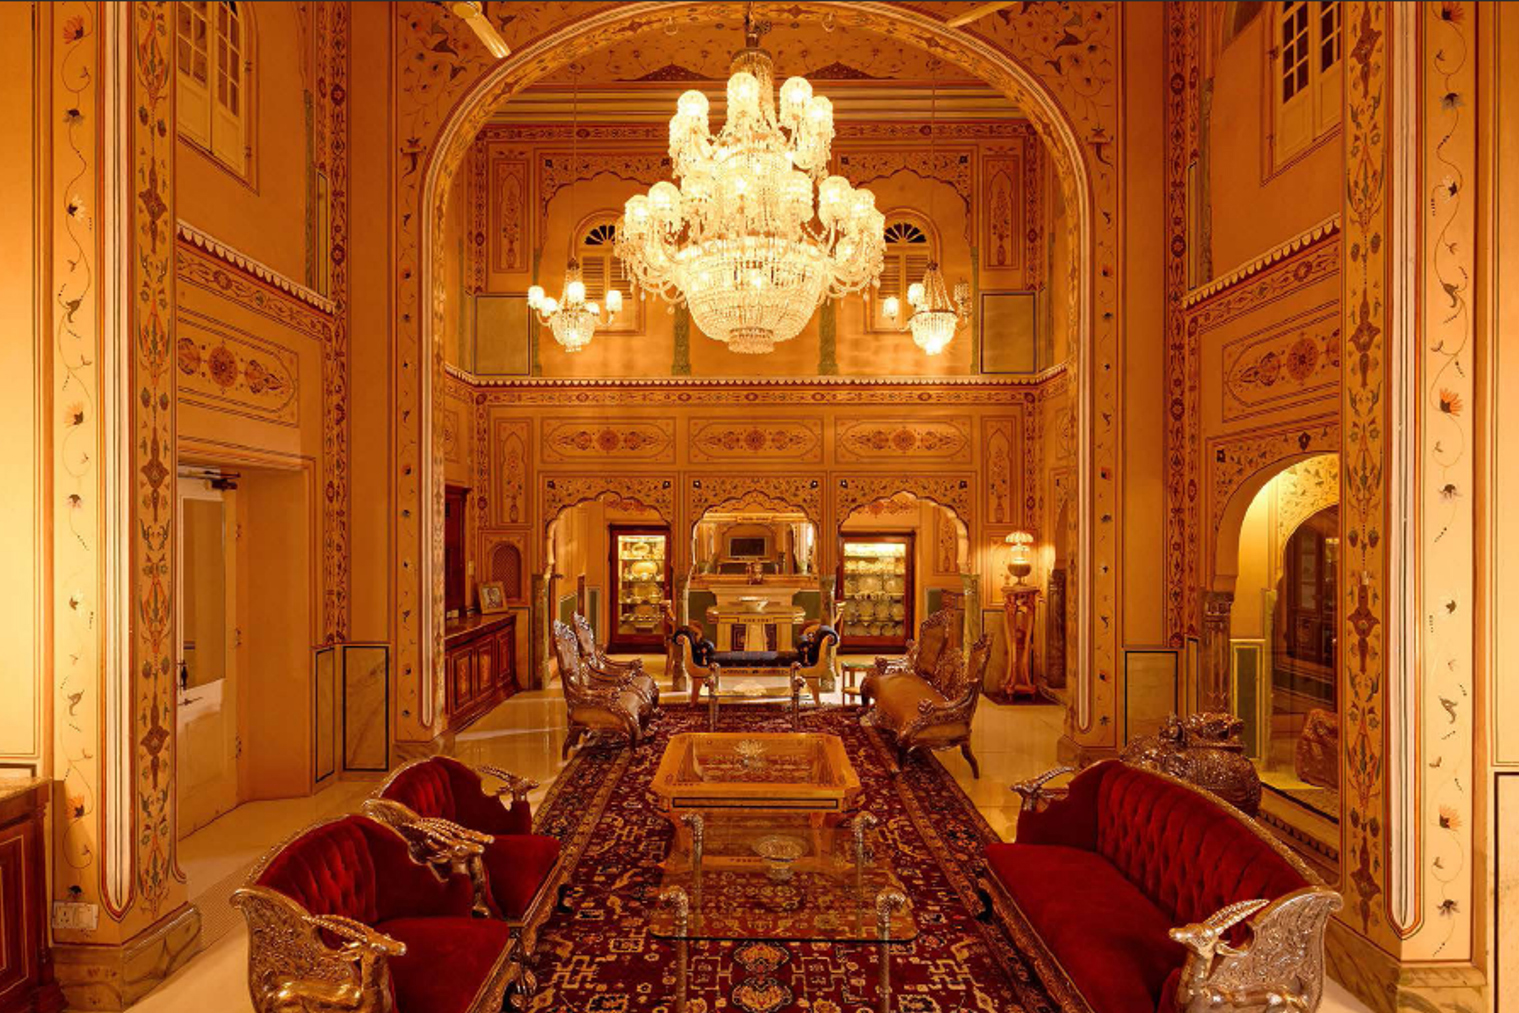 171102-lavish-hotel-rooms-maharajah-pavilion-raj-palace-jaipur-india